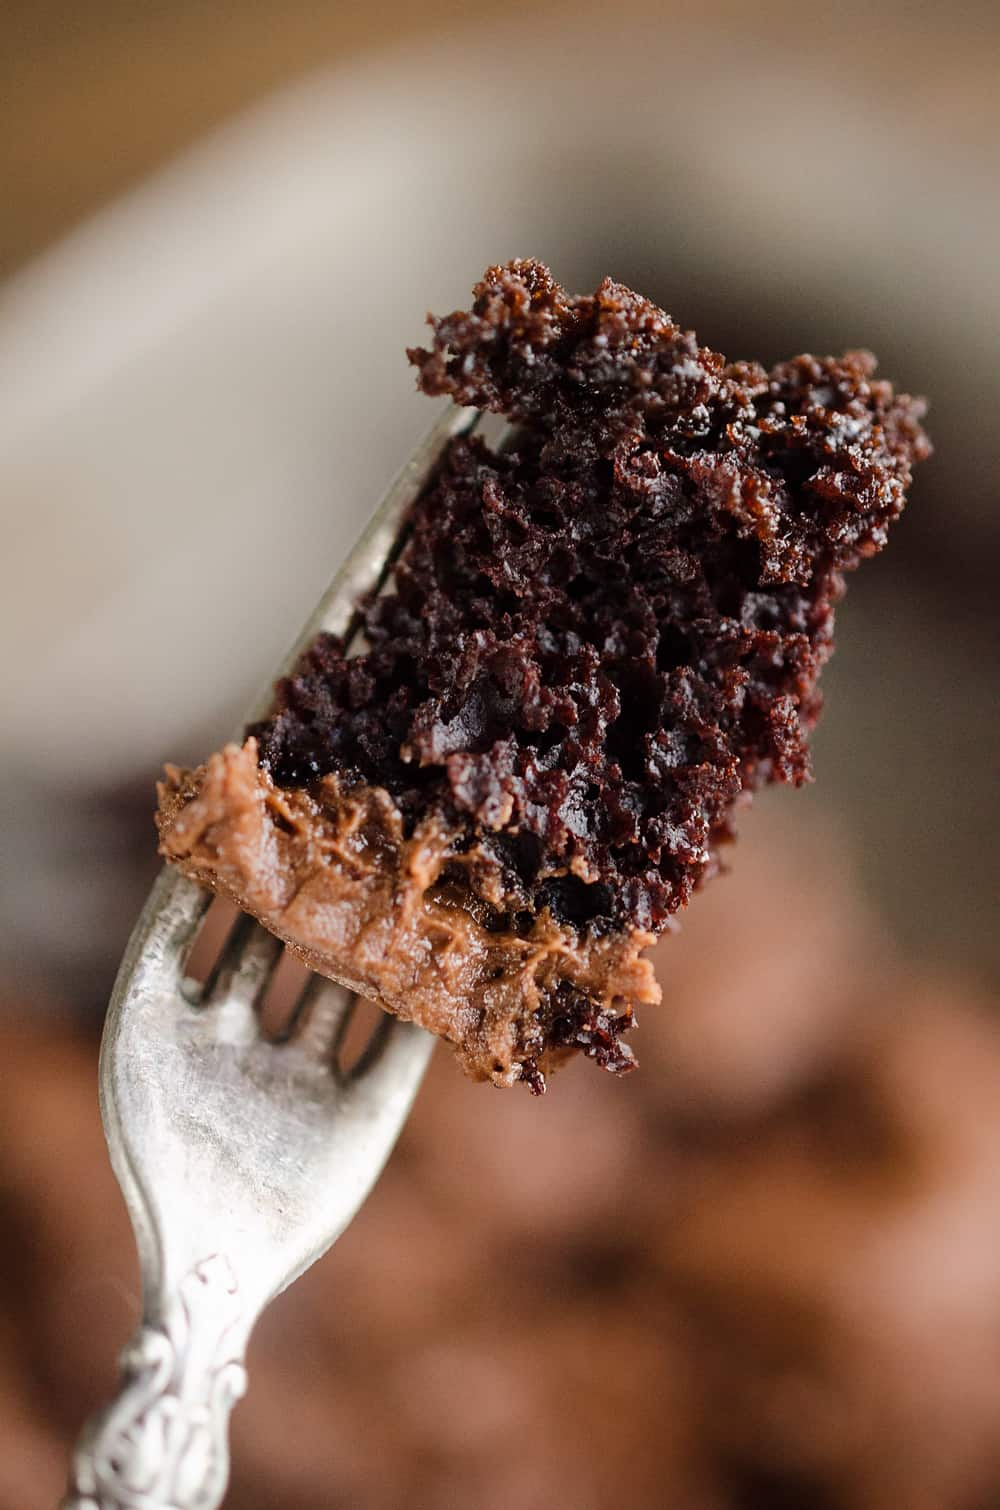 Triple Chocolate Cake bite on fork